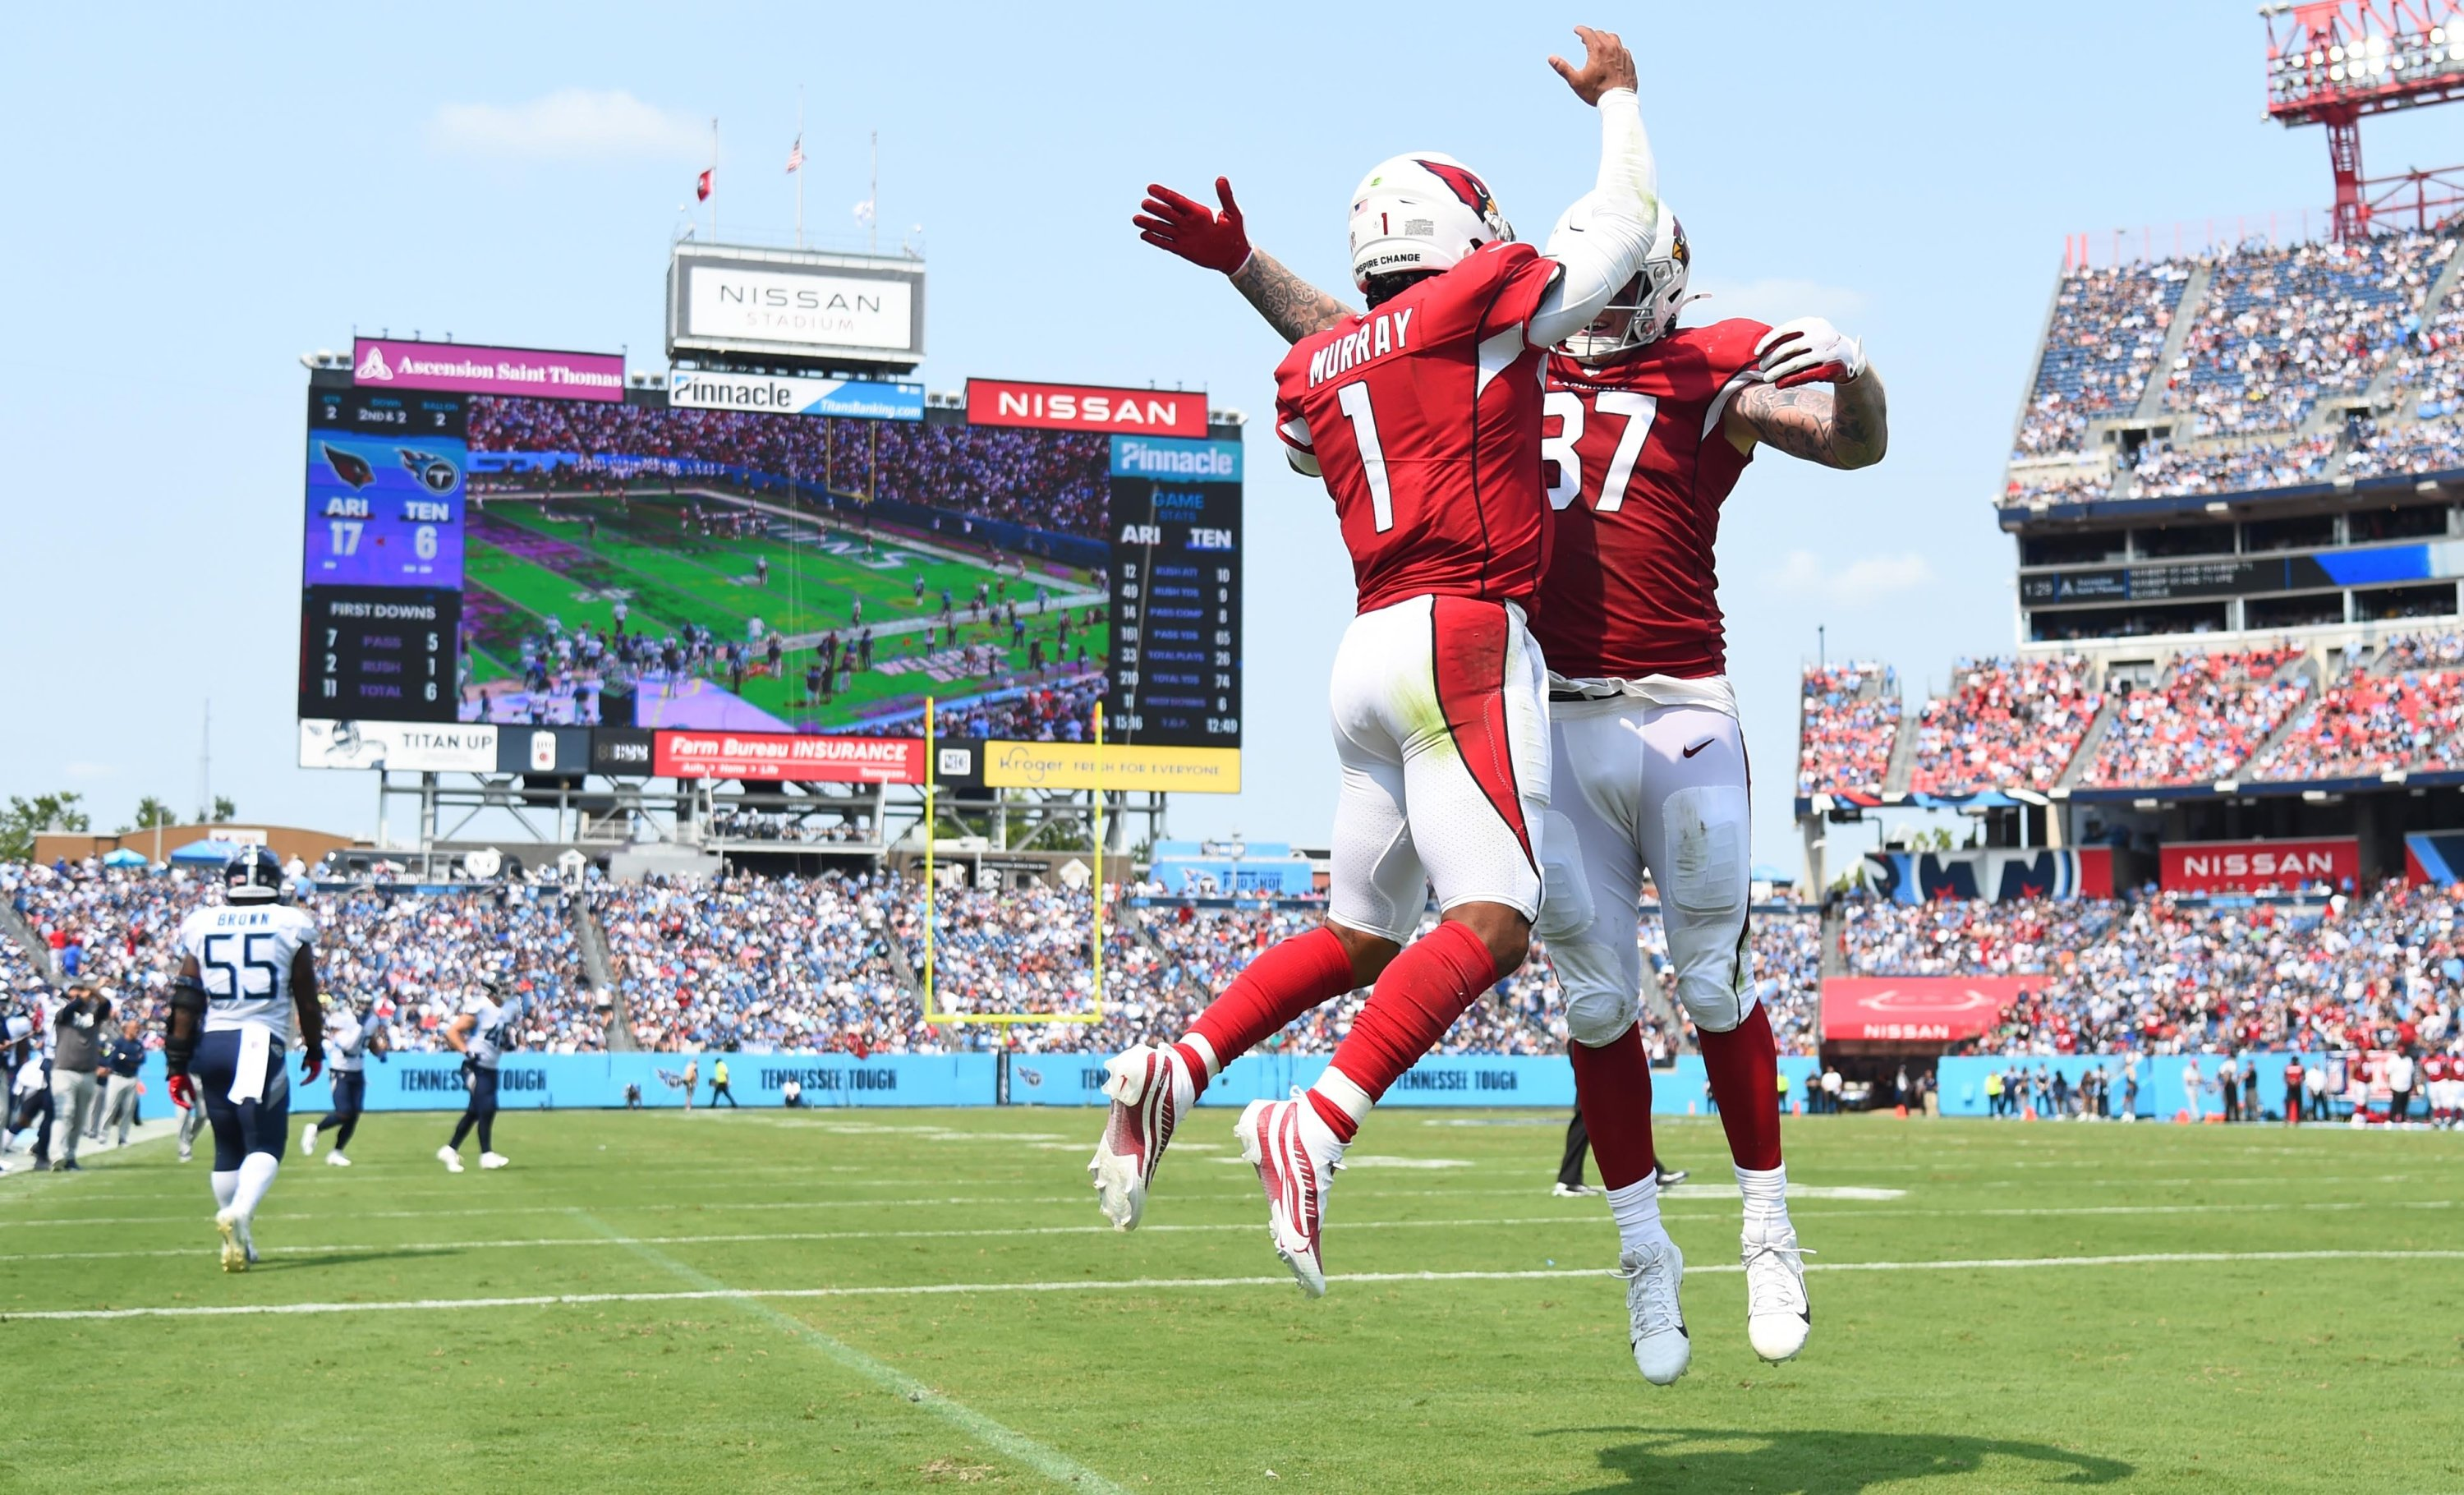 Arizona Cardinals quarterback Kyler Murray (1) celebrates with Arizona Cardinals tight end Maxx Williams (87) after a touchdown run during the first half against the Tennessee Titans at Nissan Stadium, Nashville, Tennessee, U.S., Sept. 12, 2021. (Christopher Hanewinckel-USA TODAY Sports via REUTERS)